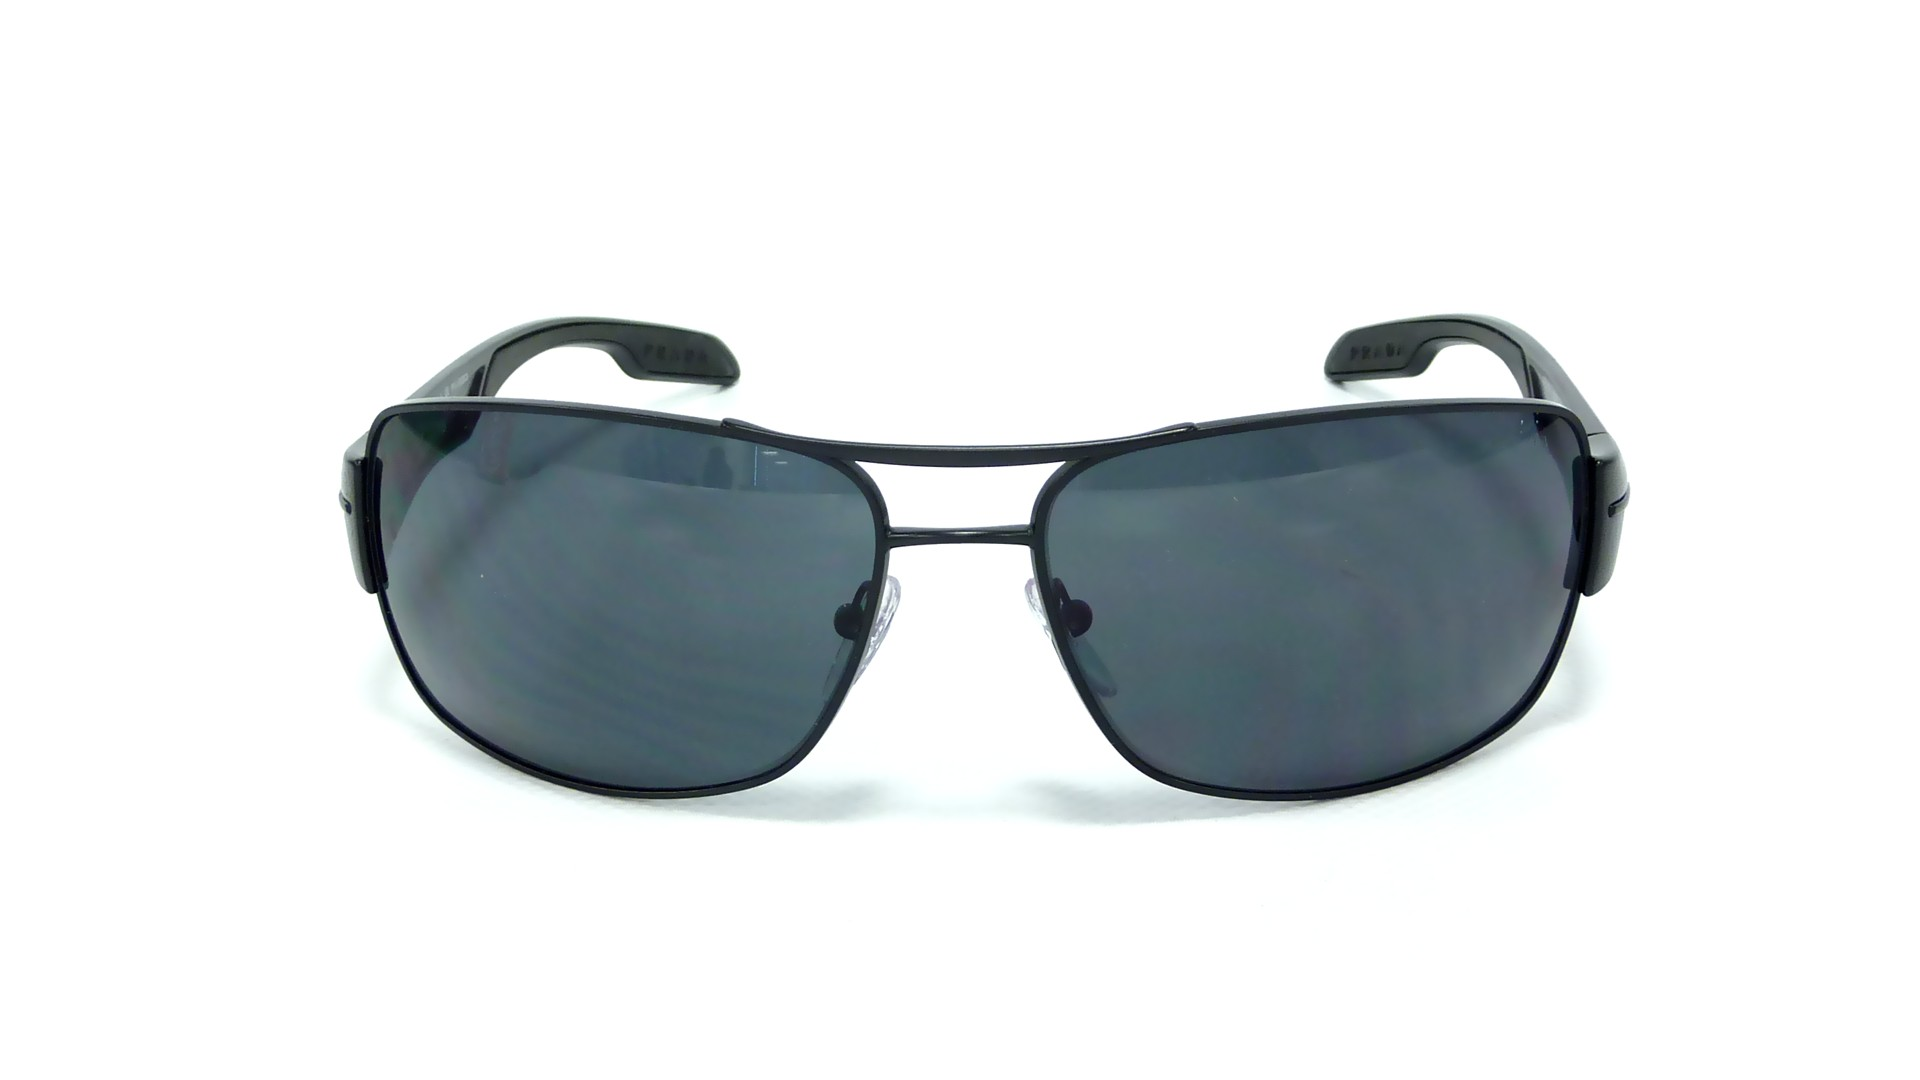 58cb8713ab4f Prada Sunglasses Polarized Lenses